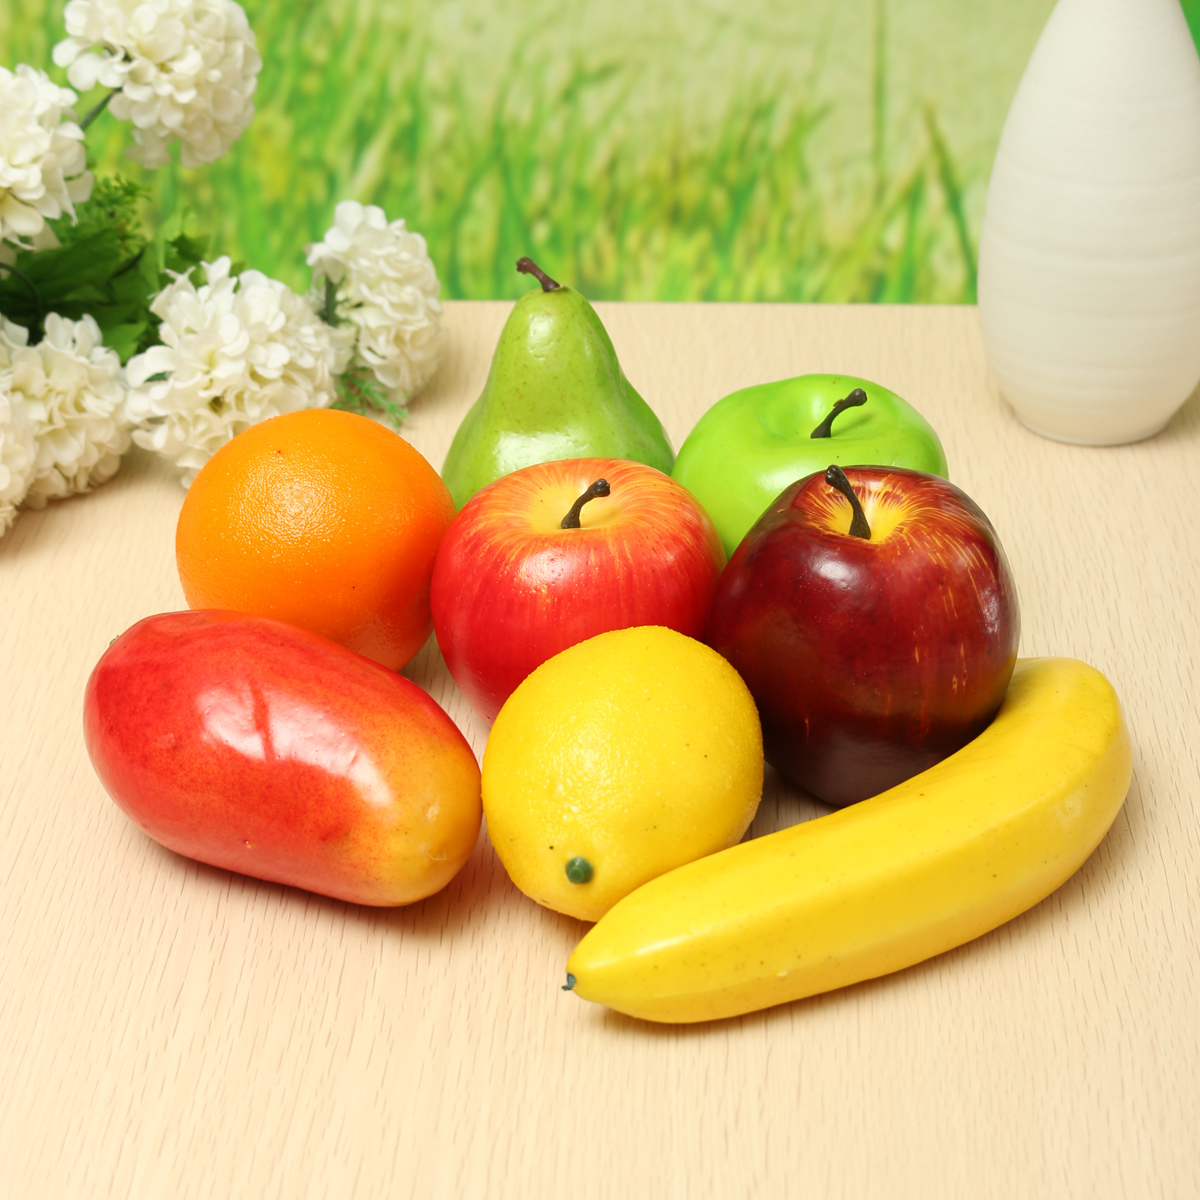 8PCS Lifelike Artificial Plastic Fruit Kitchen Fake Display Home Food Decor